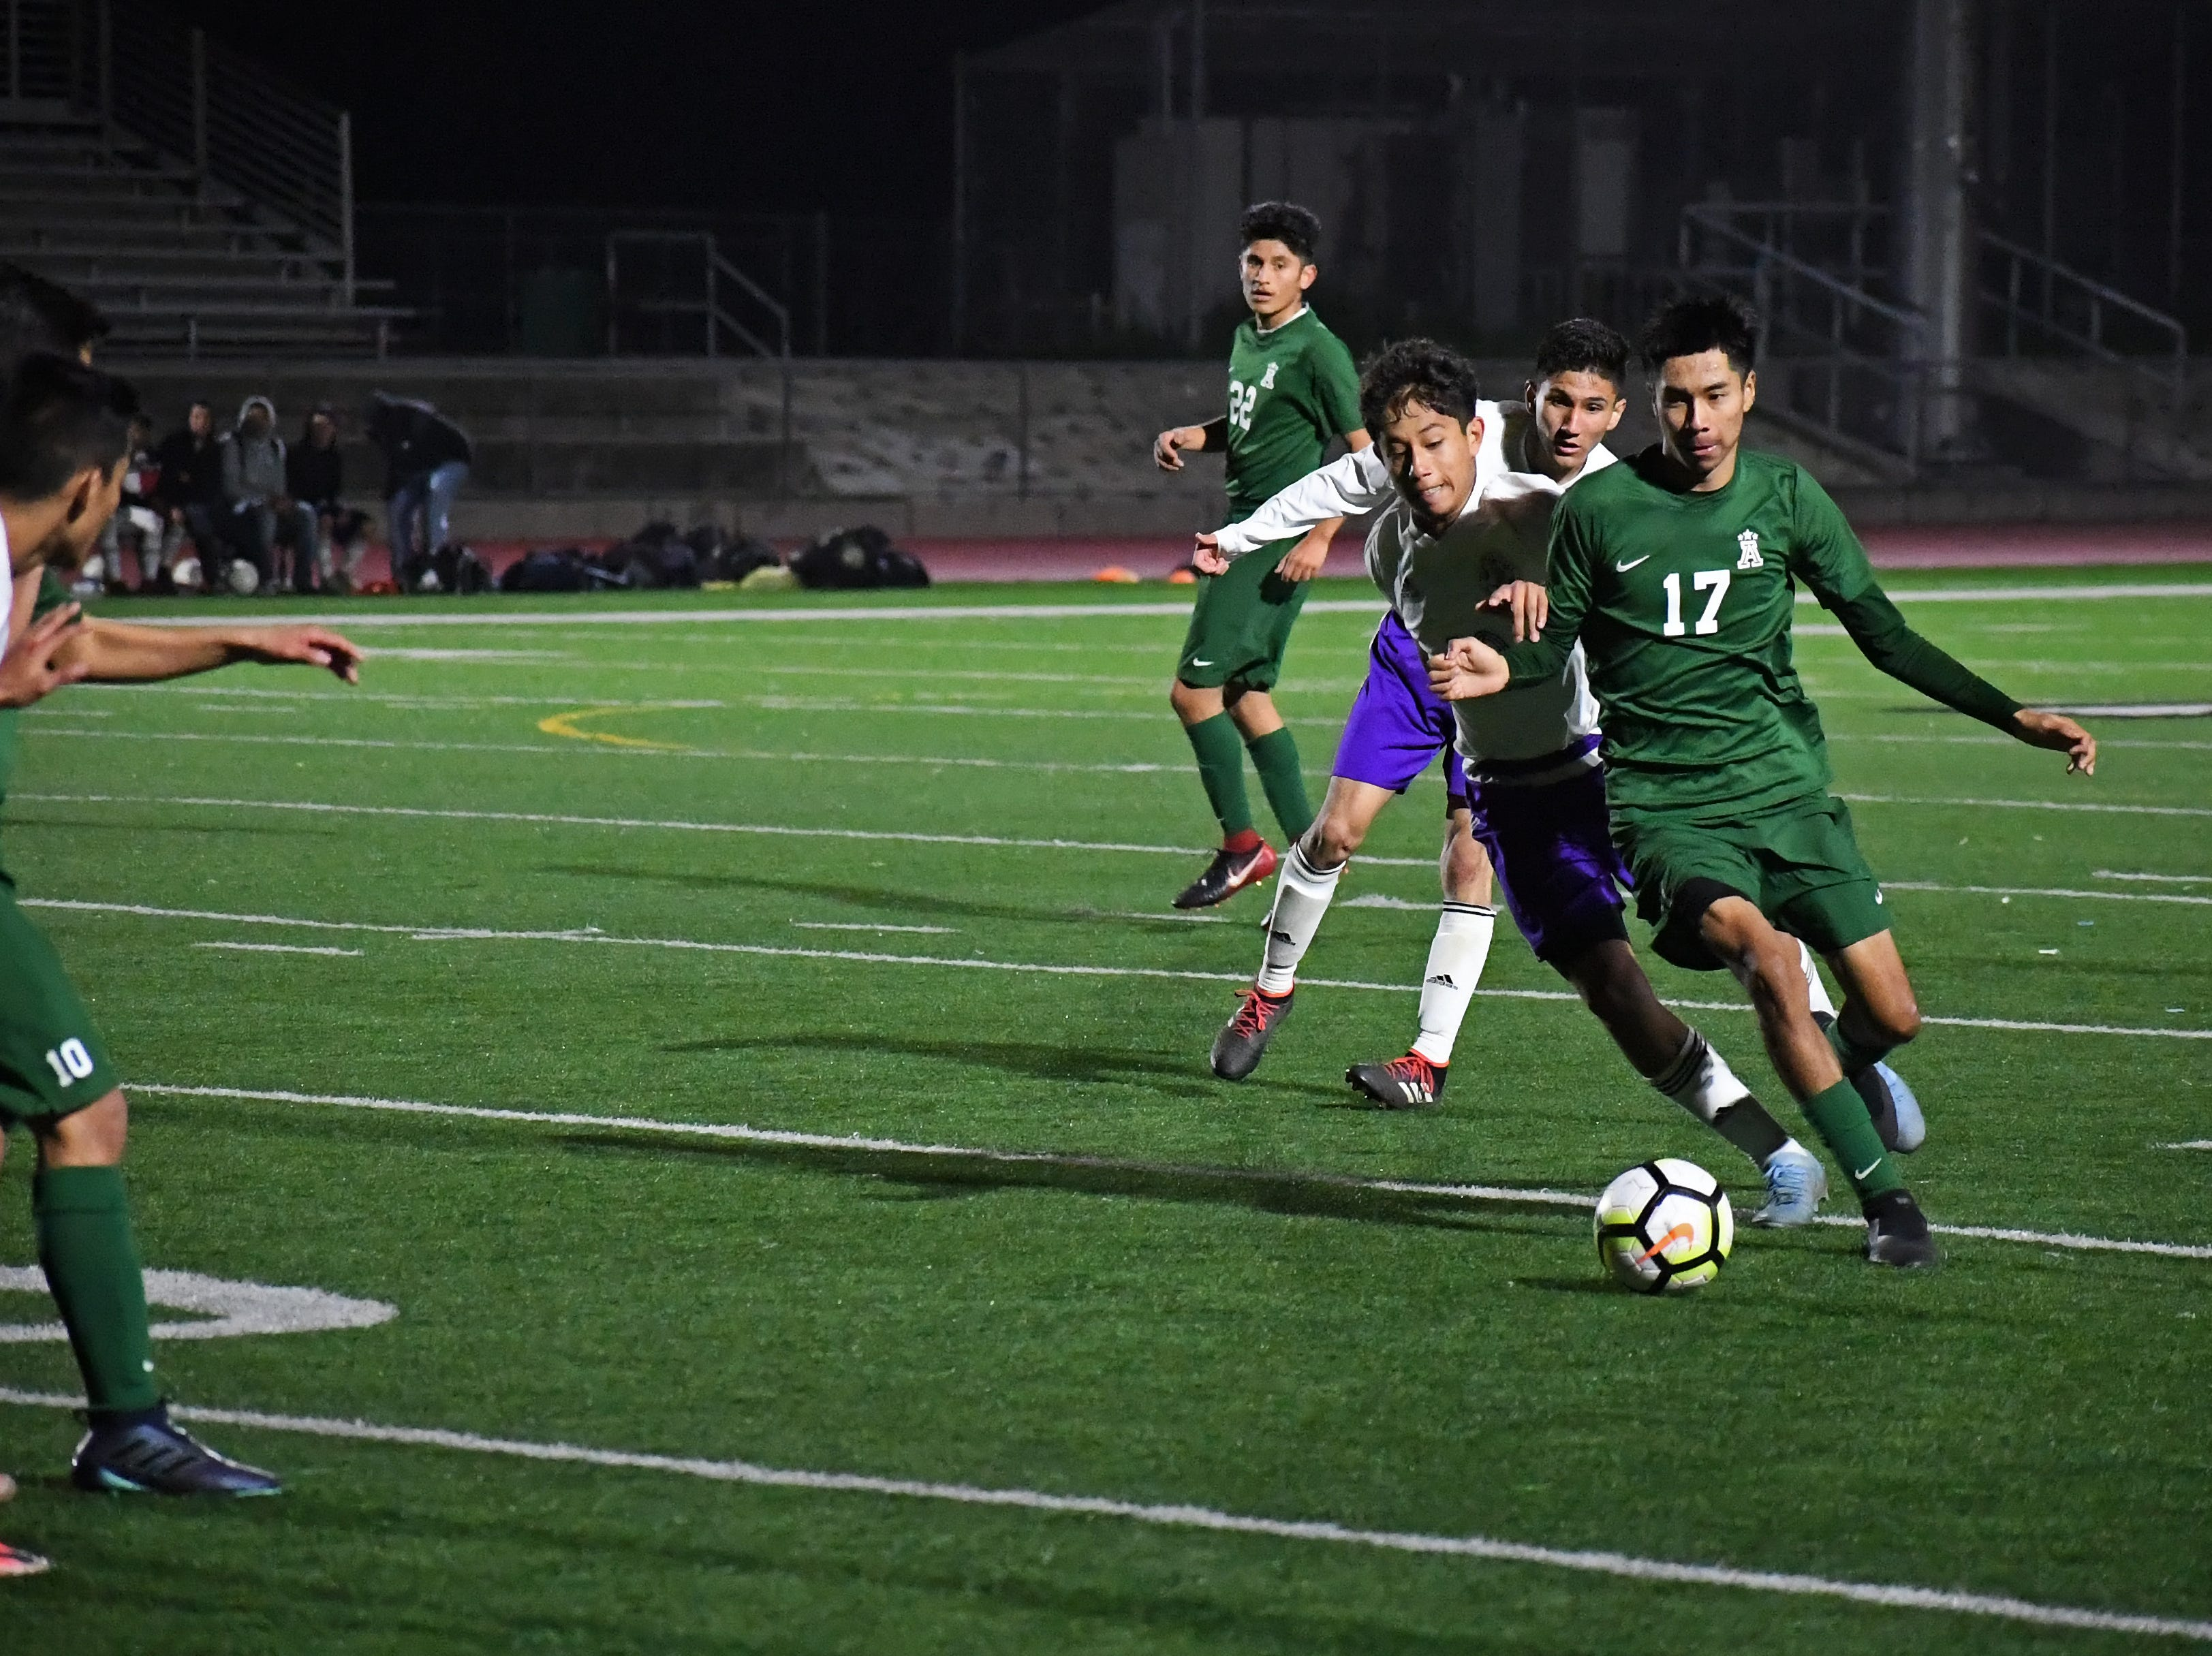 Alisal defender Angel Medrano (17) fights to gain possession back.